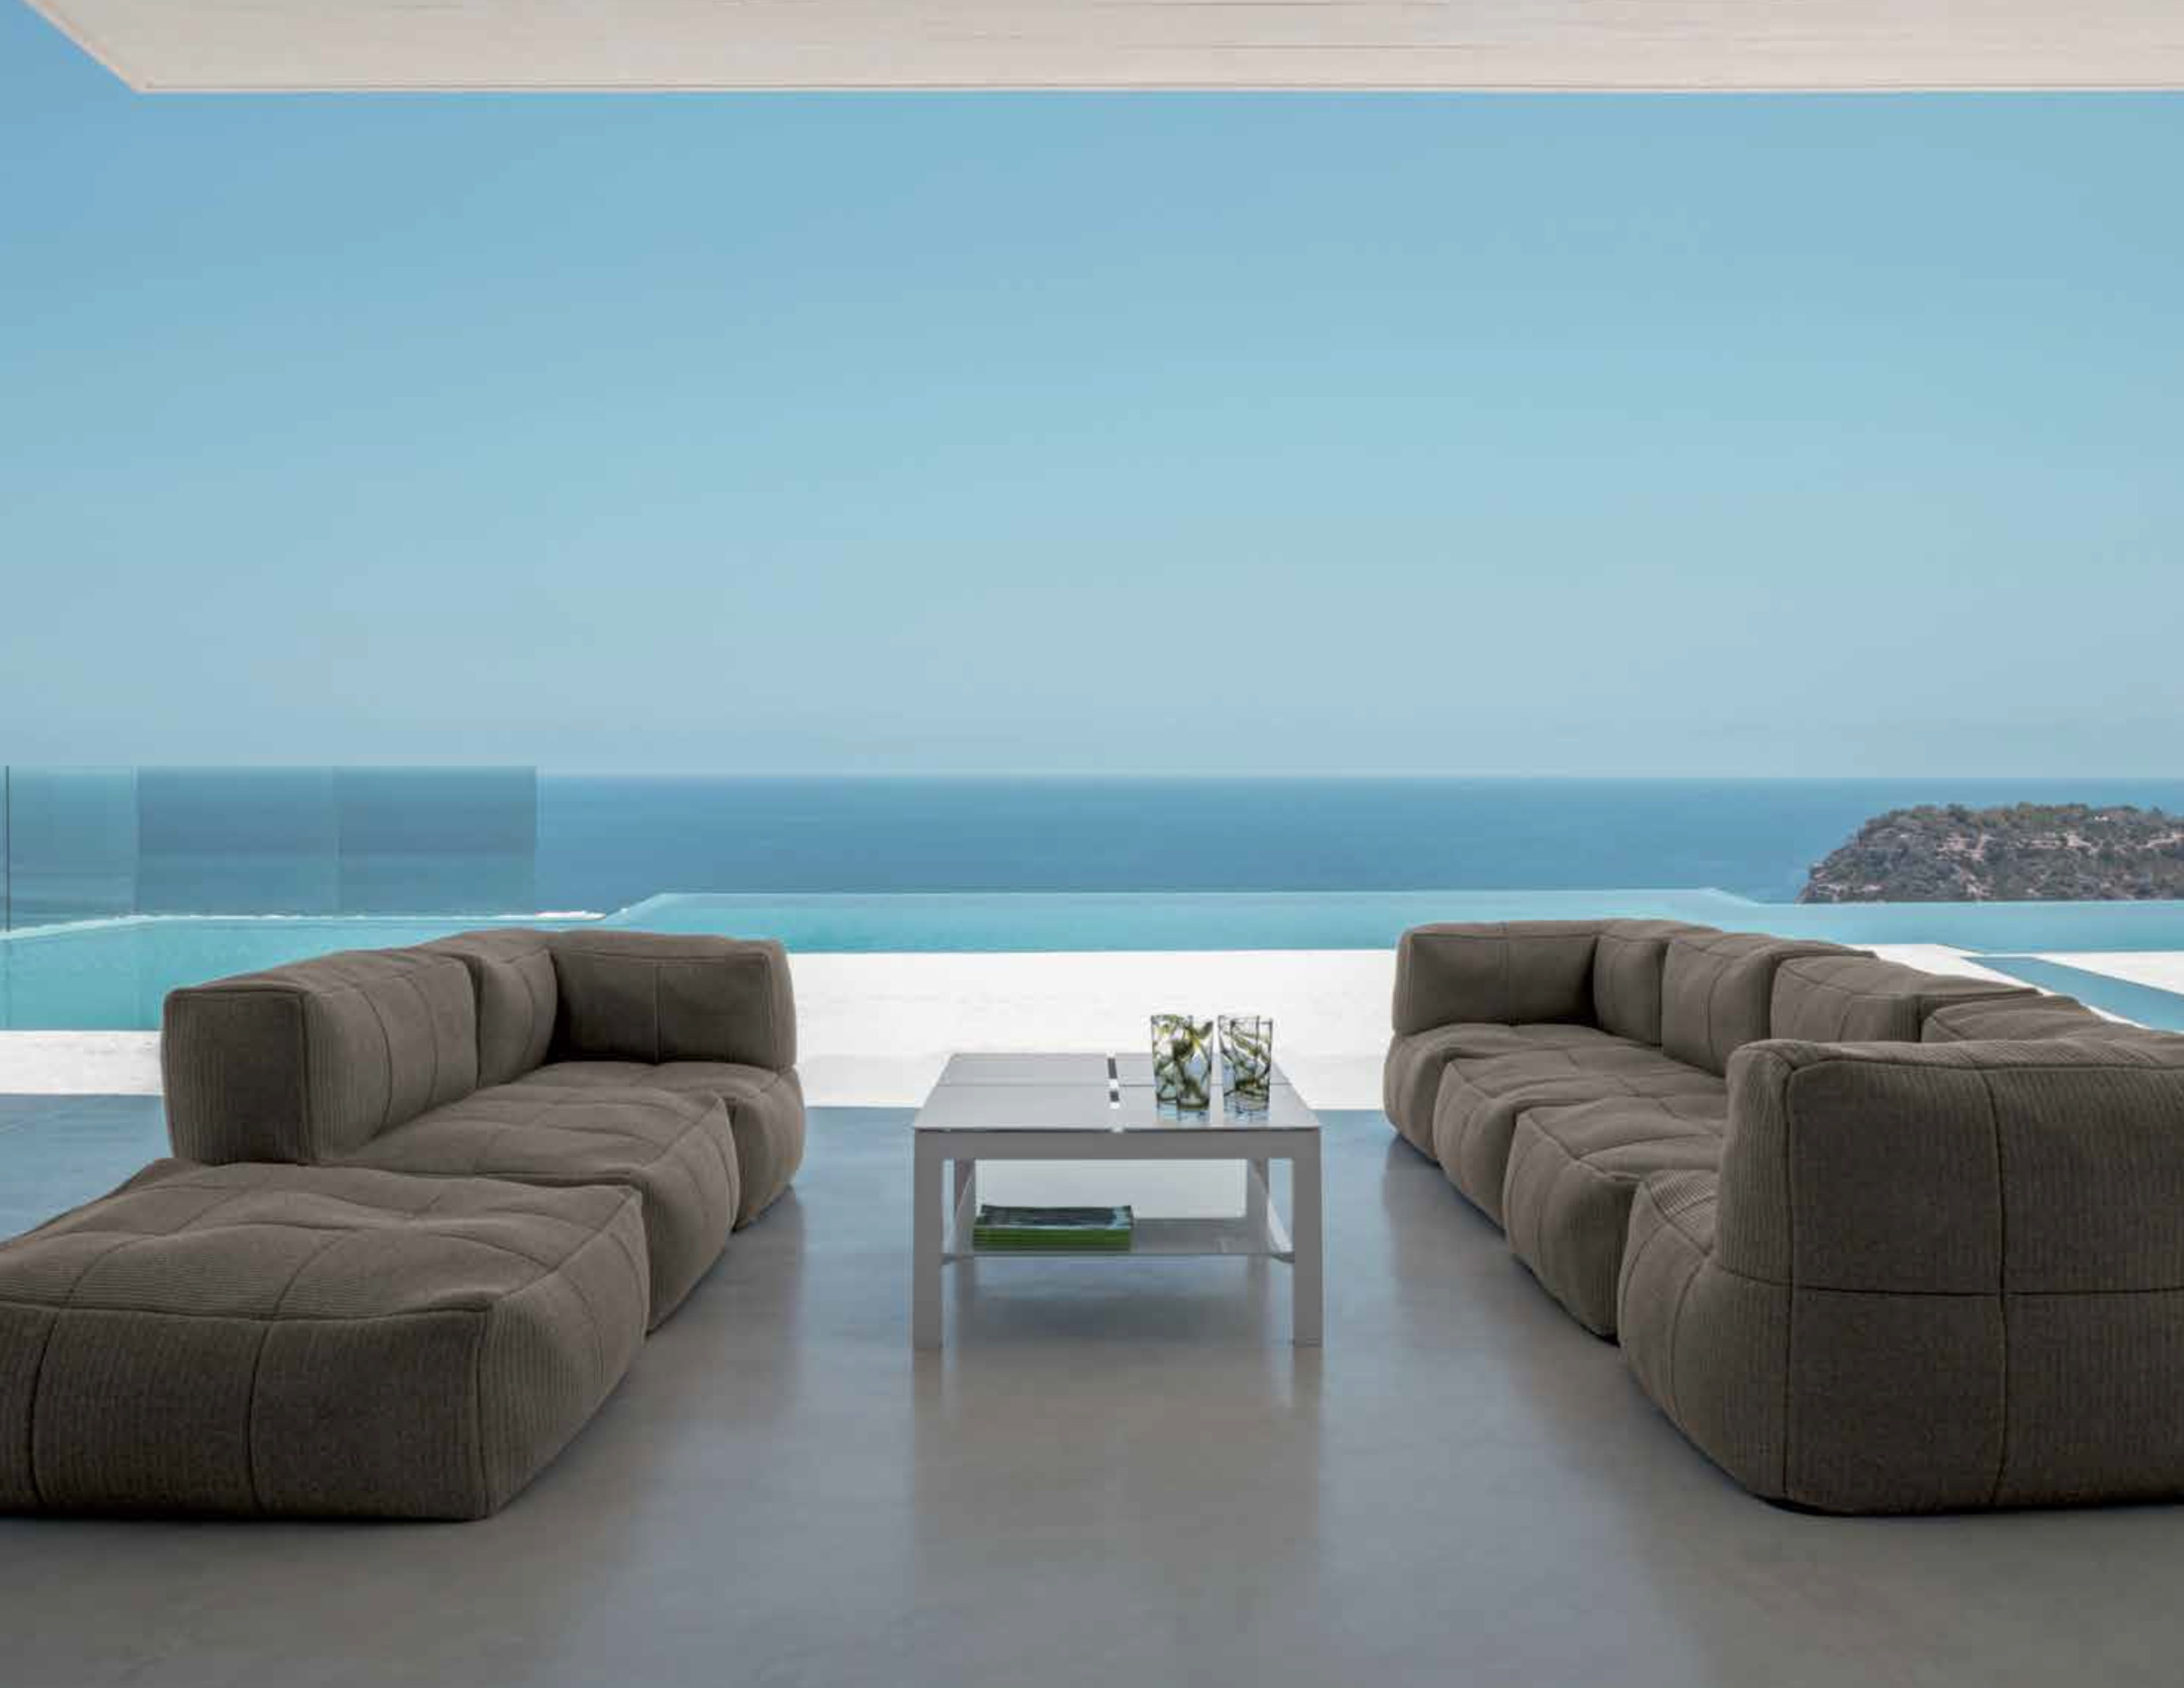 Bella Beanbag Modular Sectional Sofa Couture Outdoor